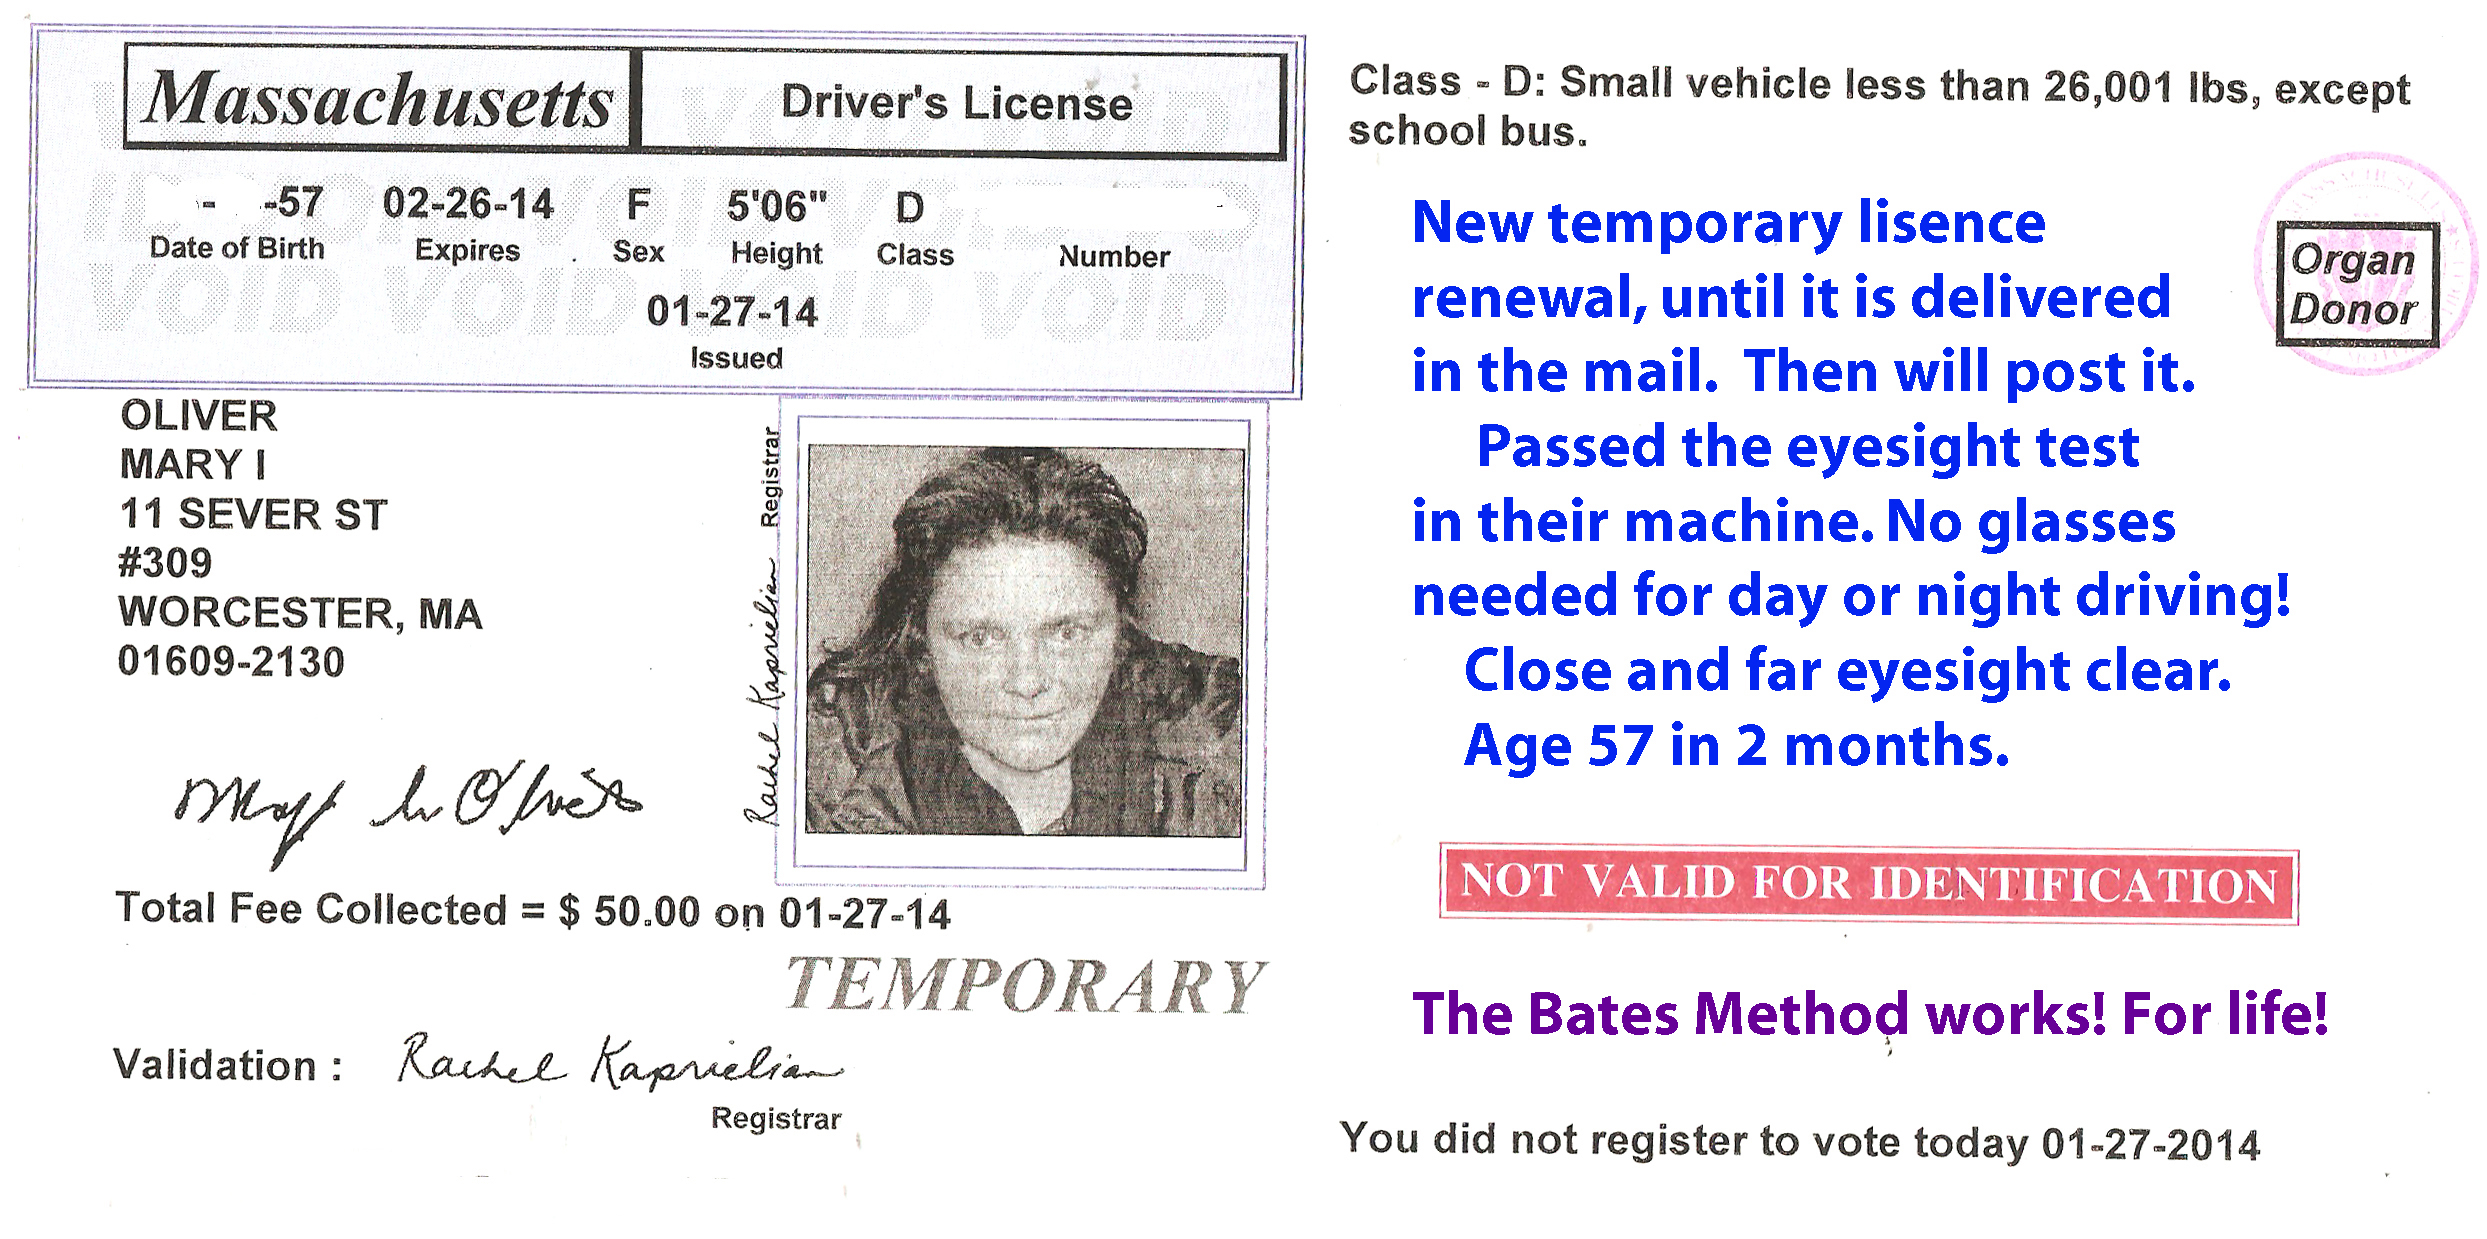 Drivers License Cedartown Ga Renew Drivers License Ma Online